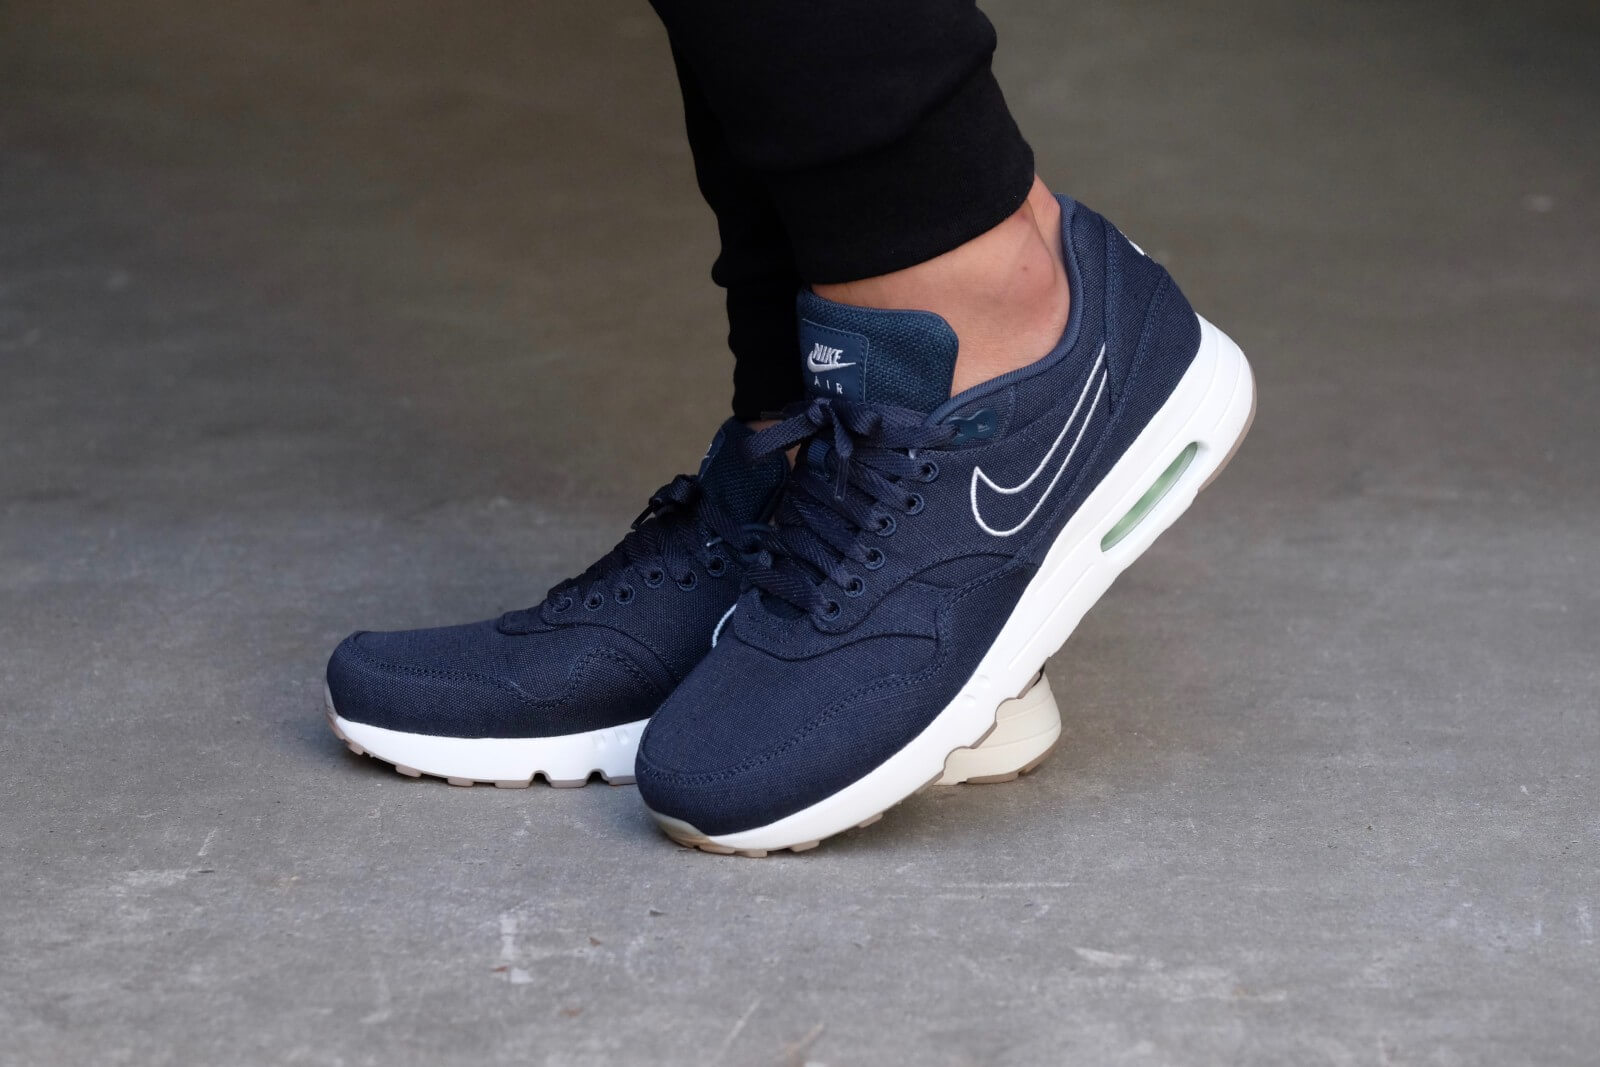 Nike Air Max 1 Ultra 2.0 Textile Armory Navy/Armory Navy-Sail-Fresh Mint -  898009-400